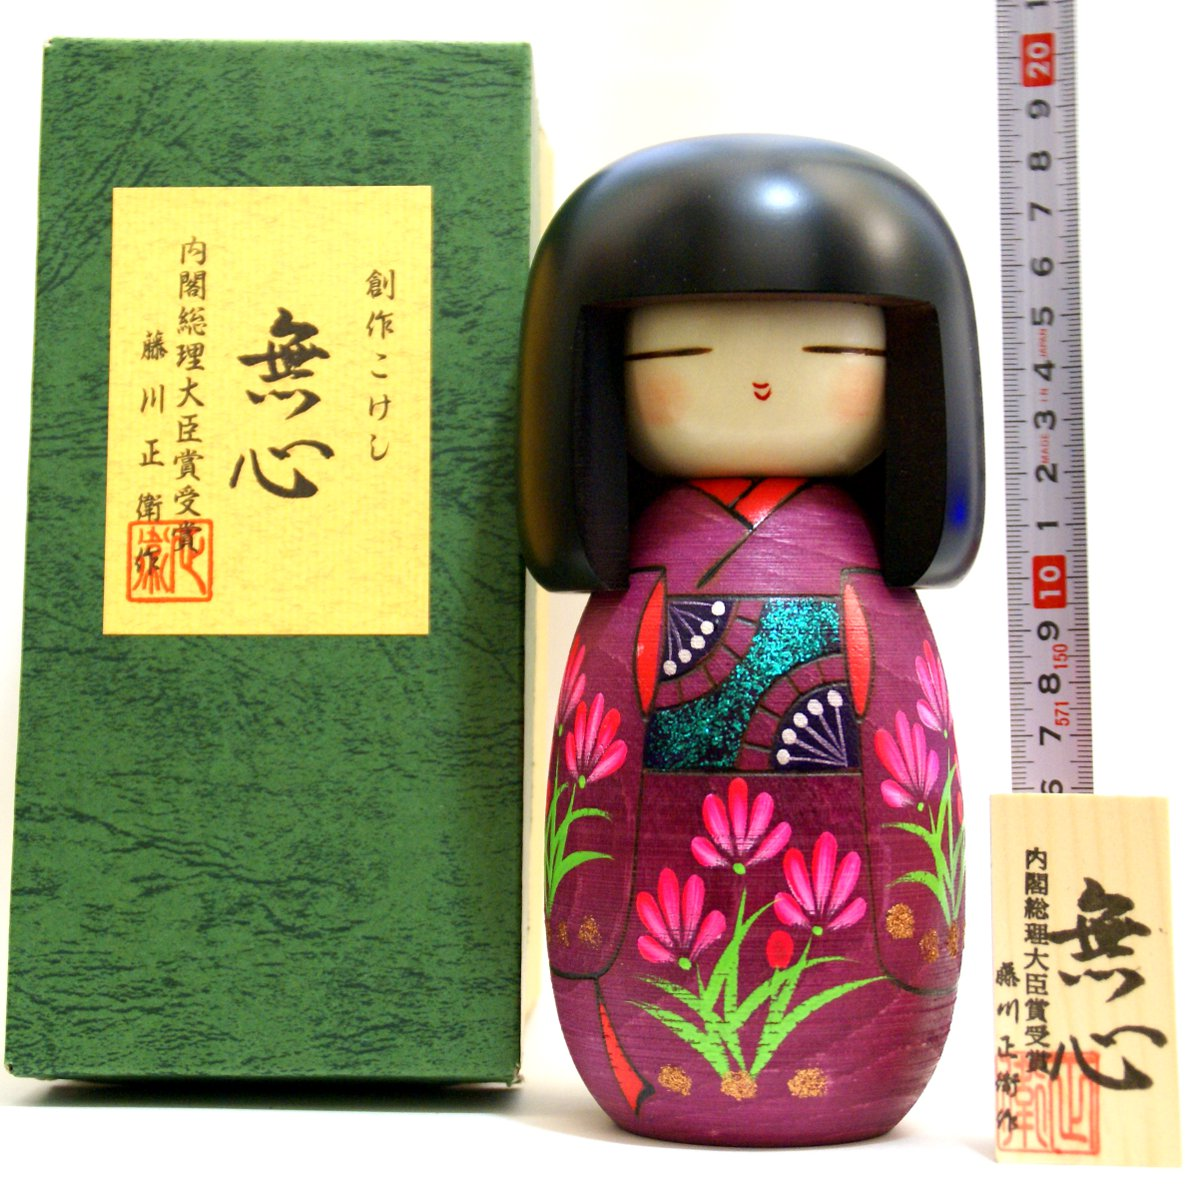 an introduction to the ancient art of japan kokeishi dolls An introduction to the ancient art of japan kokeishi dolls english poet an analysis of the meditations of rene descartes geoffrey chaucer wrote many poems a biography of robert browning a poet in his lifetime learn more on biography com 24-8-2017 elizabeth barrett browning: elizabeth barrett browning elizabeth barrett browning (1806-1861) a.